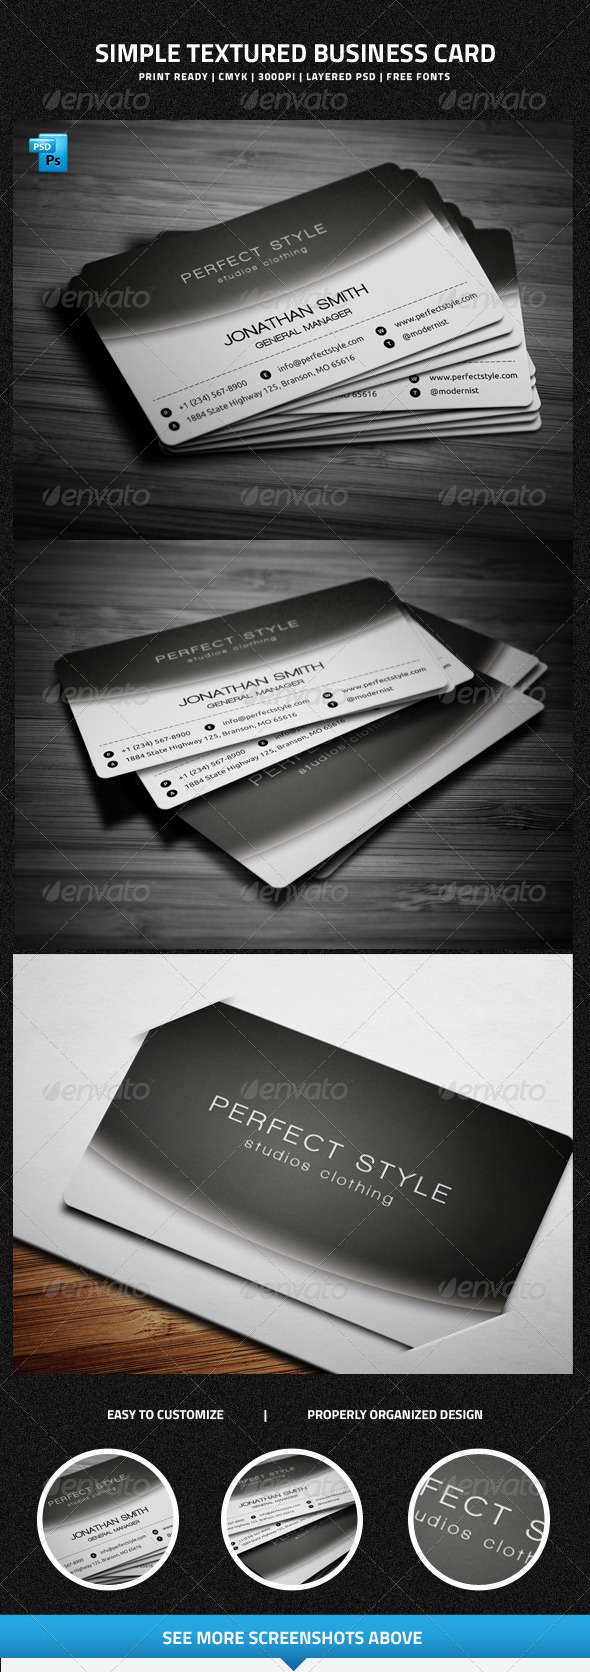 Simple Textured Business Card - 24 - Creative Business Cards